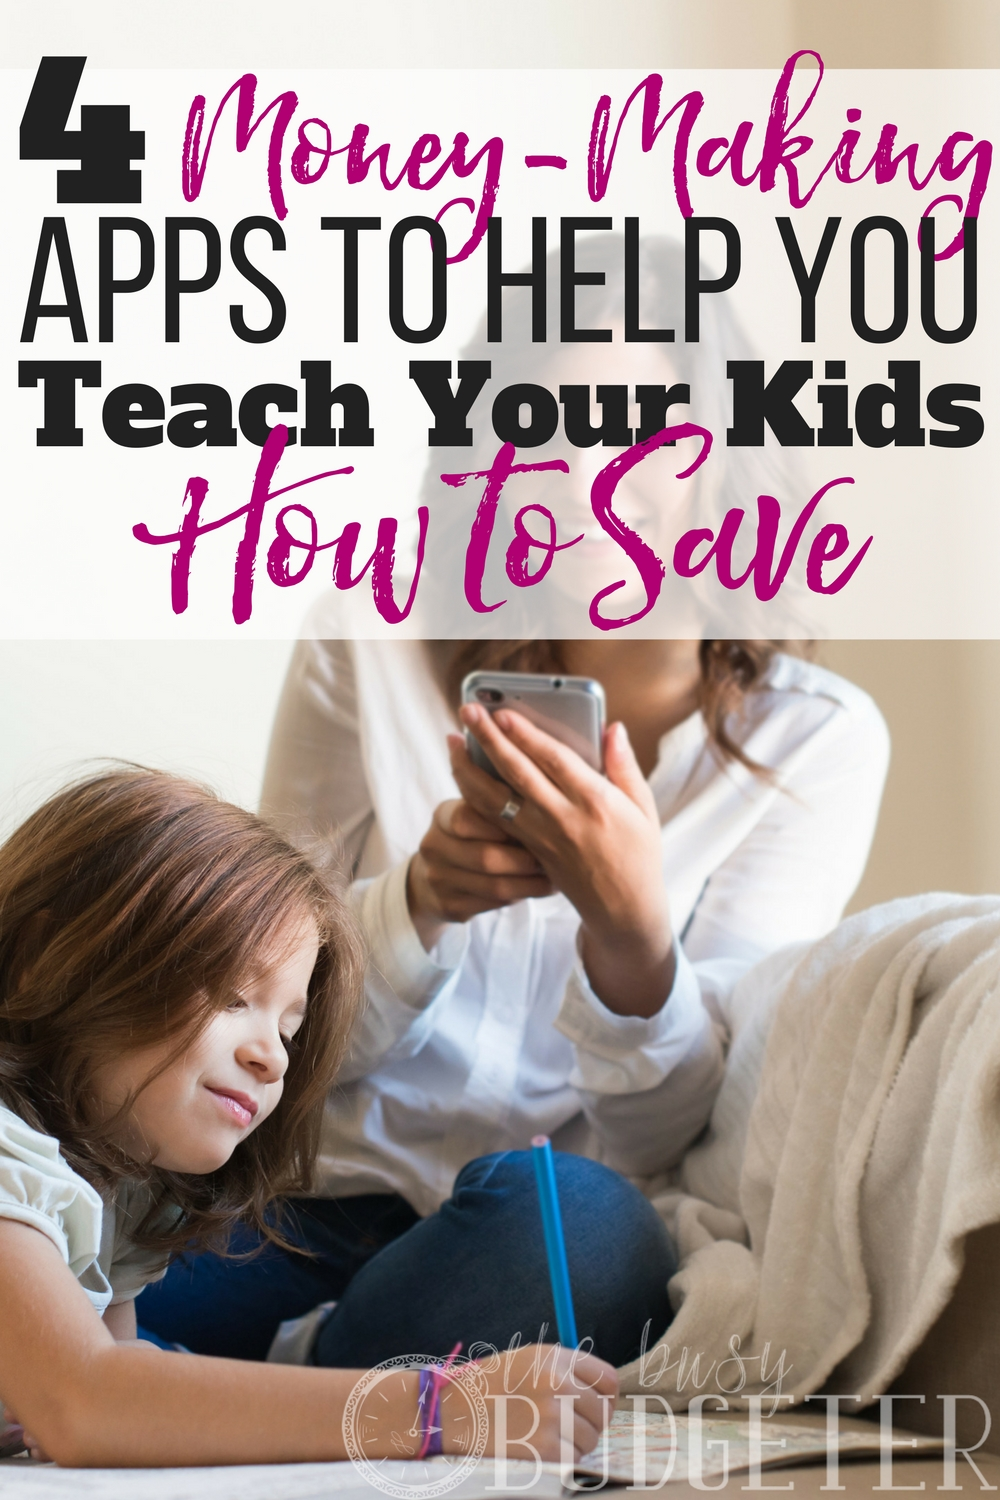 This worked like a charm for my kids! I could never figure out the trick to how to teach your kids how to save money but this article was so spot on. I downloaded these apps and before I knew it they were already starting to save money and I was earning extra cash! Amazing!